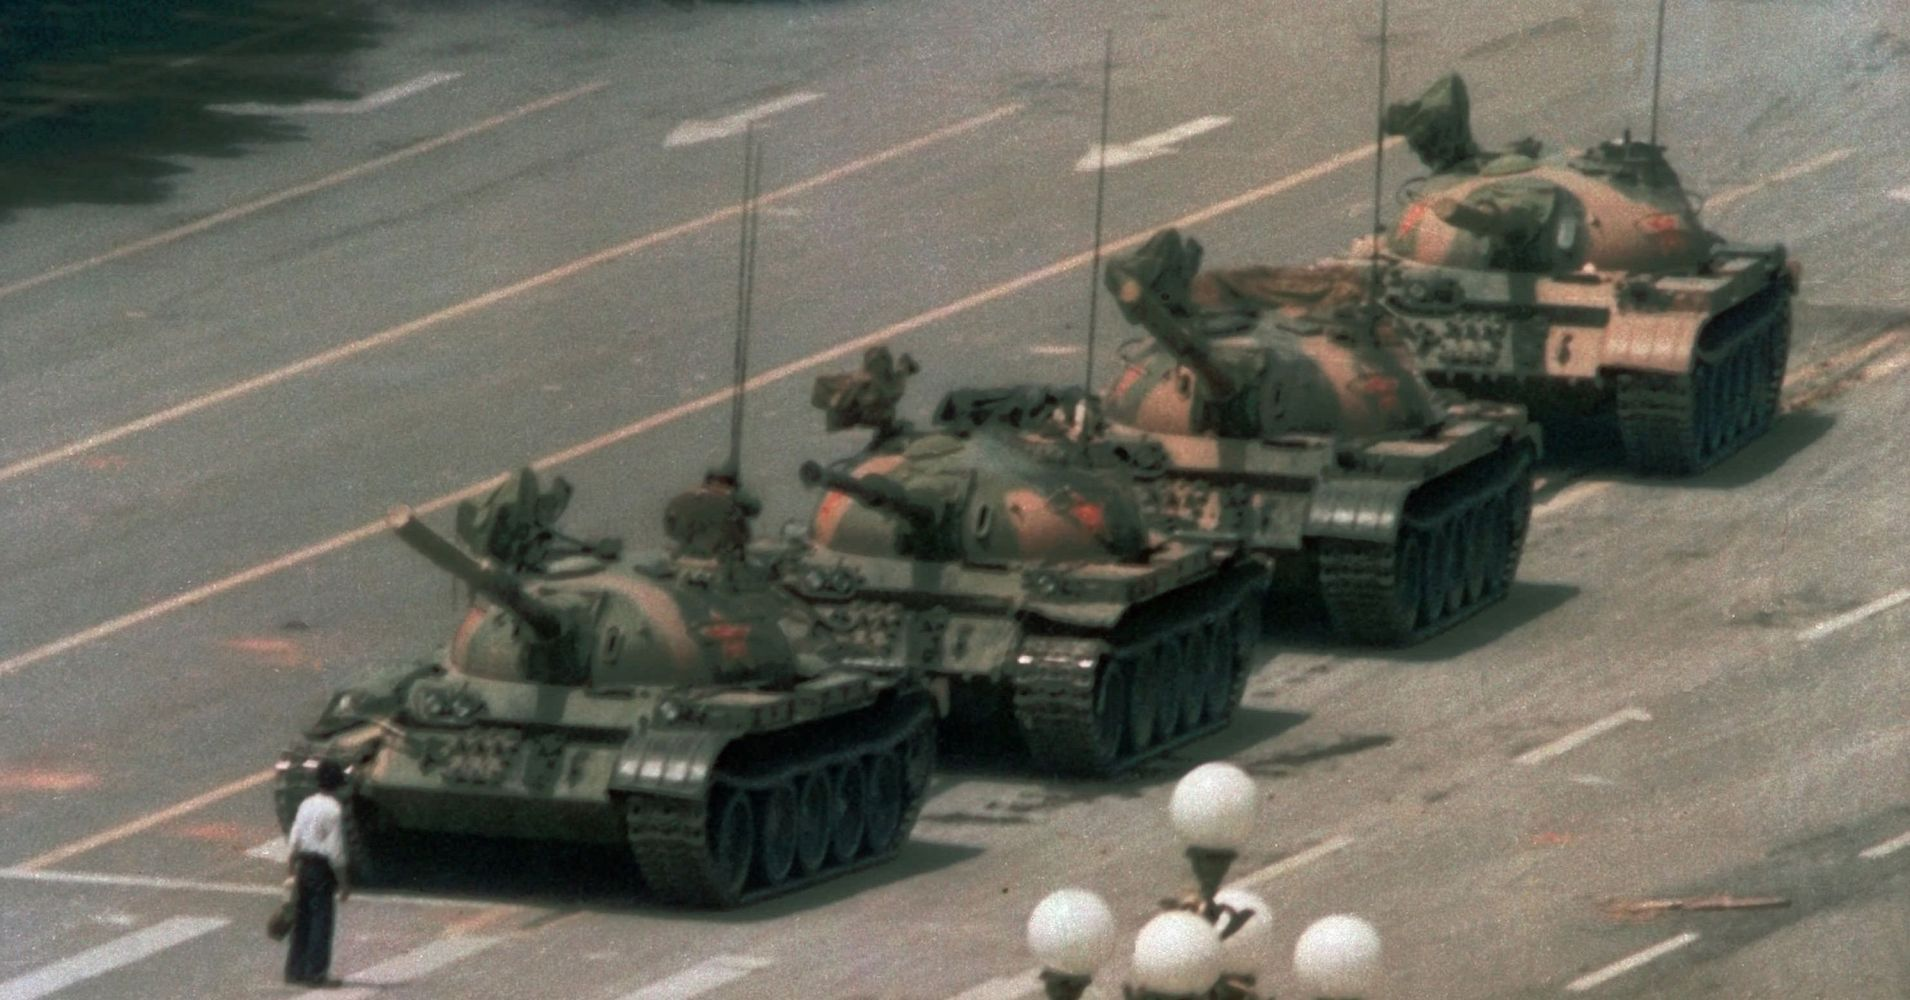 This week is the 25th anniversary of the Tiananmen Square Massacre in China in 1989. The nation has been busy trying to keep their citizens from remembering the demonstration by doing things like blocking all Google apps. Here are 13 unforgettable photos of the infamous event.